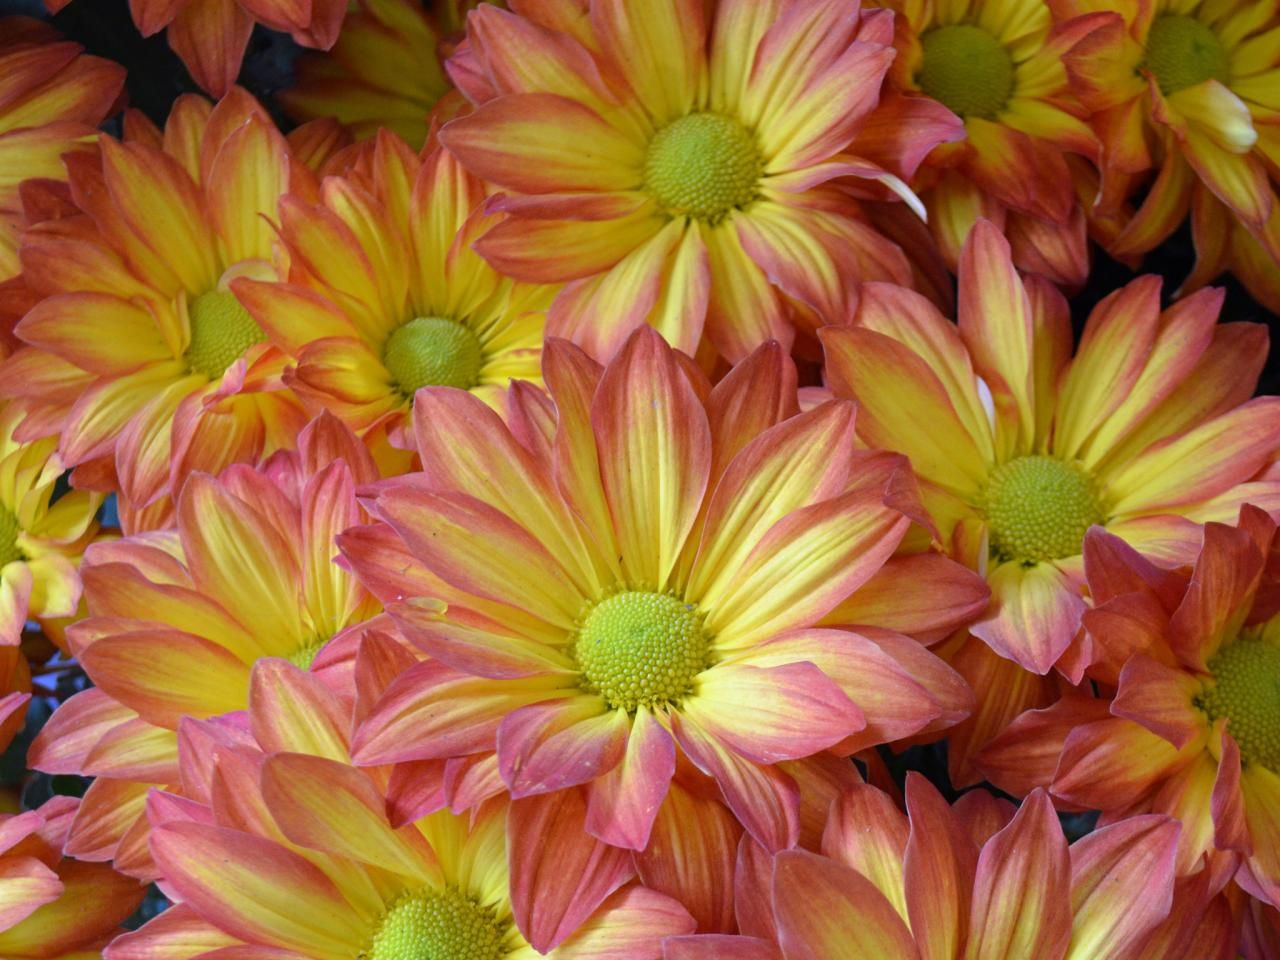 Daisy Mums Night Blooming Flowers Flowers Last Longer Flower Pictures